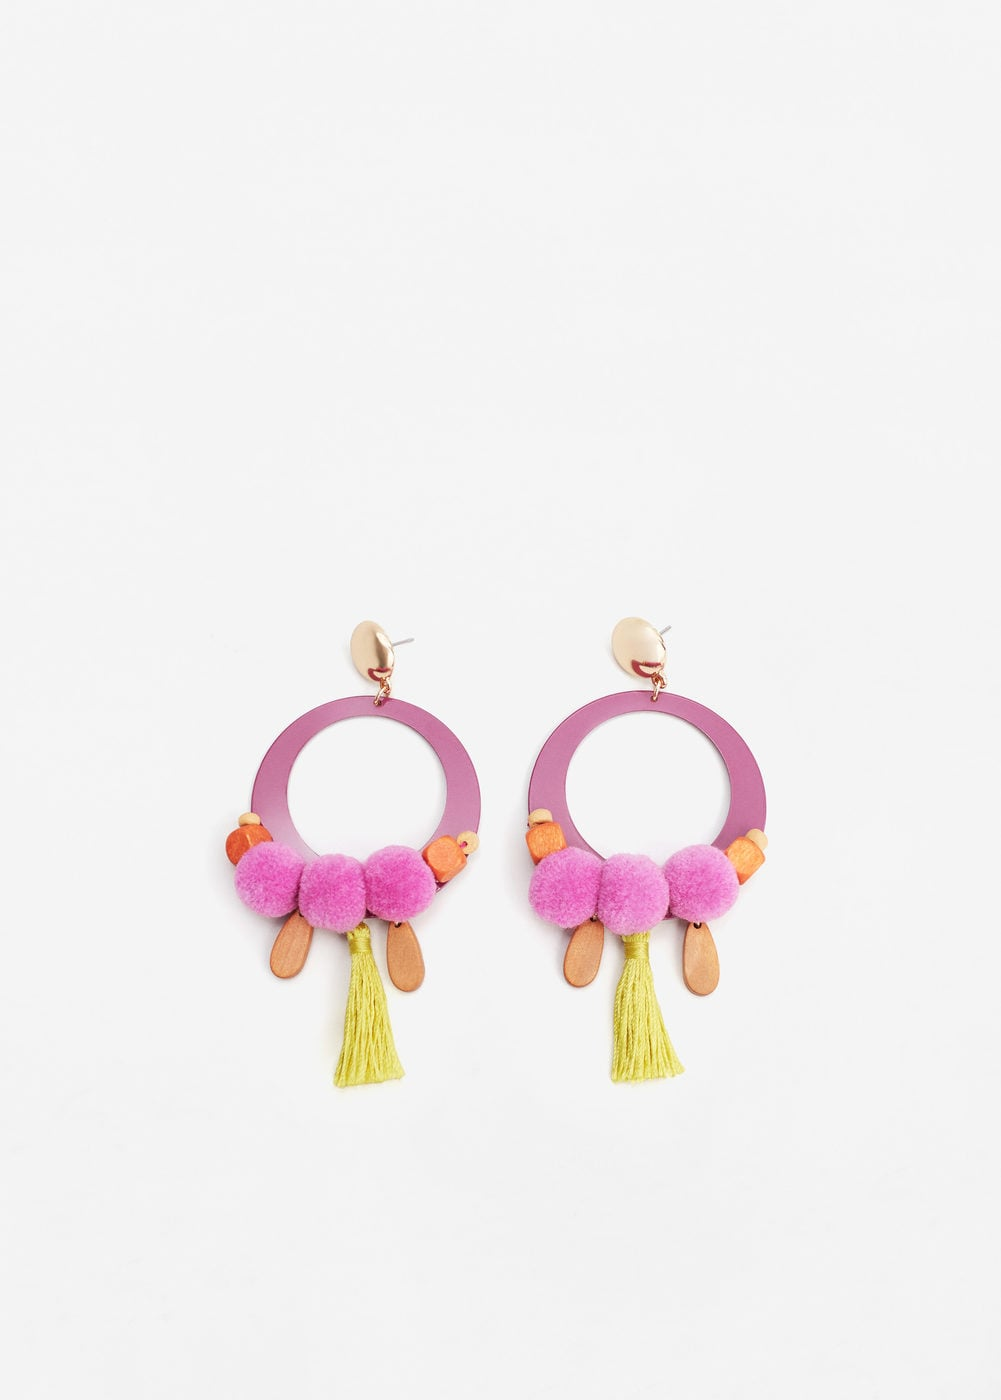 bead loop earrings.jpg